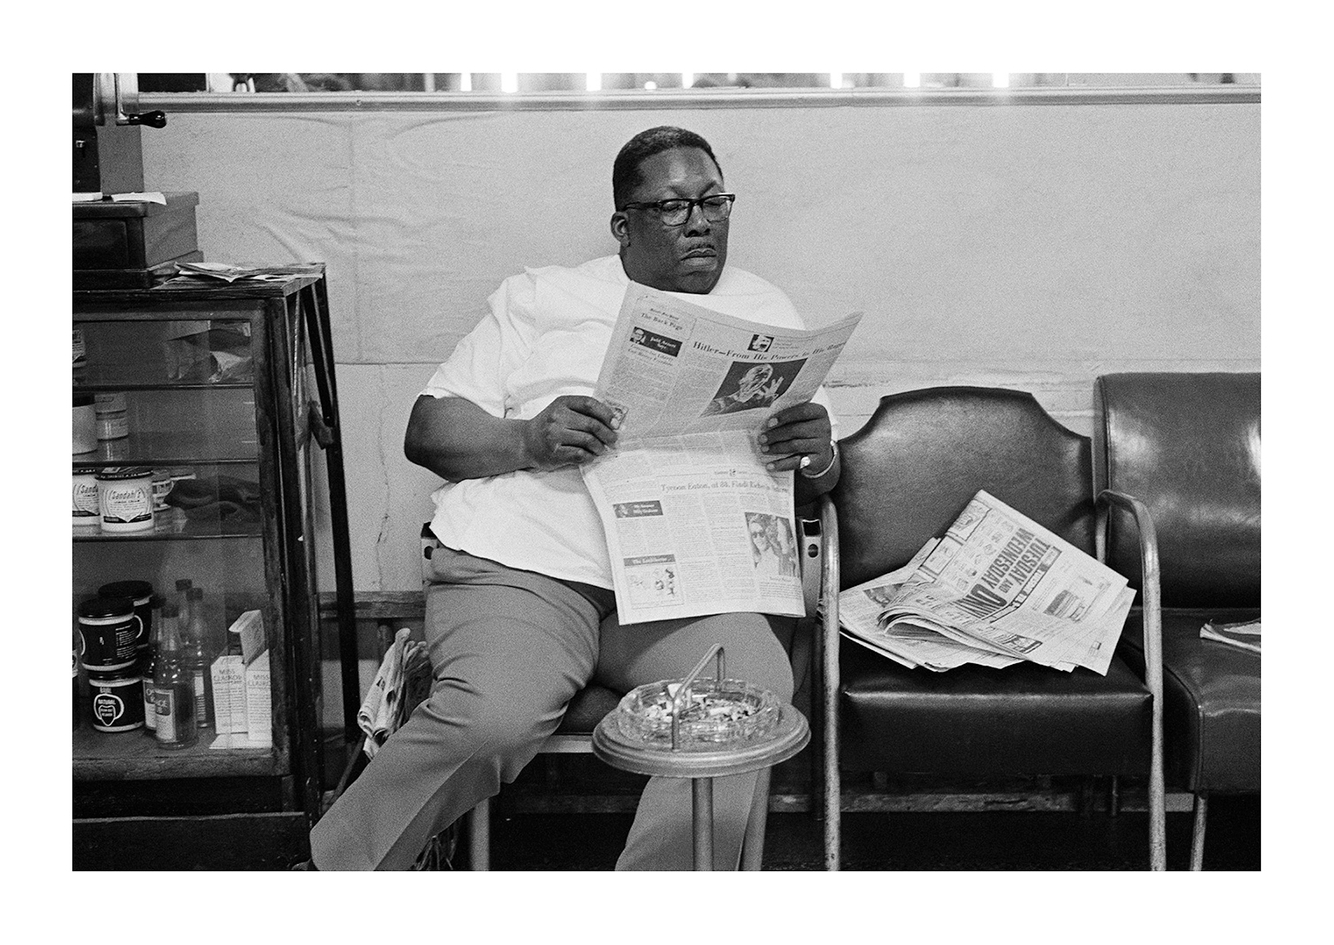 Joe's Barbershop, Daily Read, 7704 Oakland, Detroit 1972